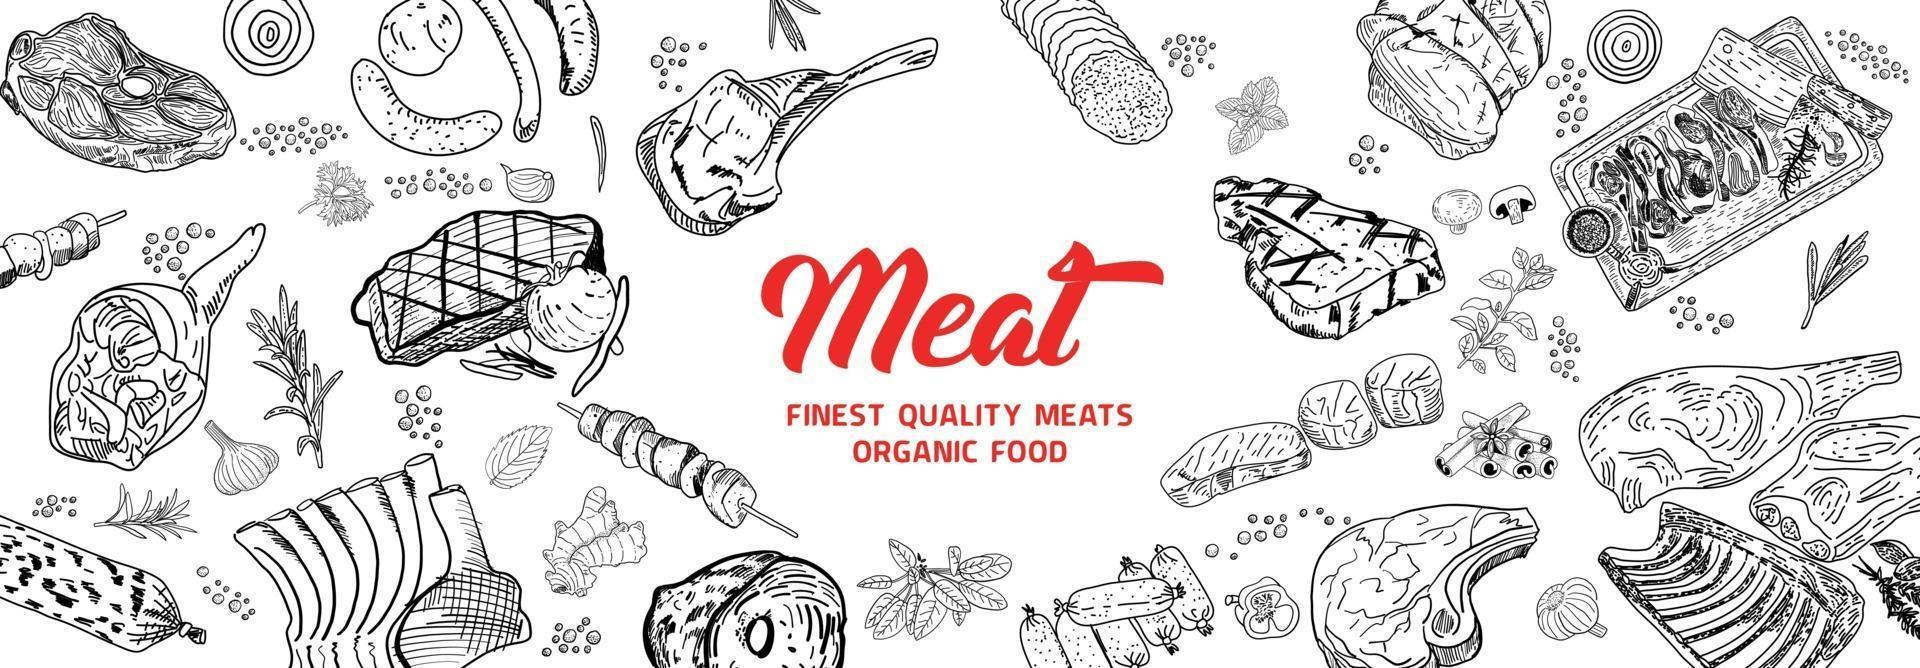 Meat products. Top view frame. Hand drawn illustration. Pieces of meat design template. Engraved design. Great for package design. Vector illustration.